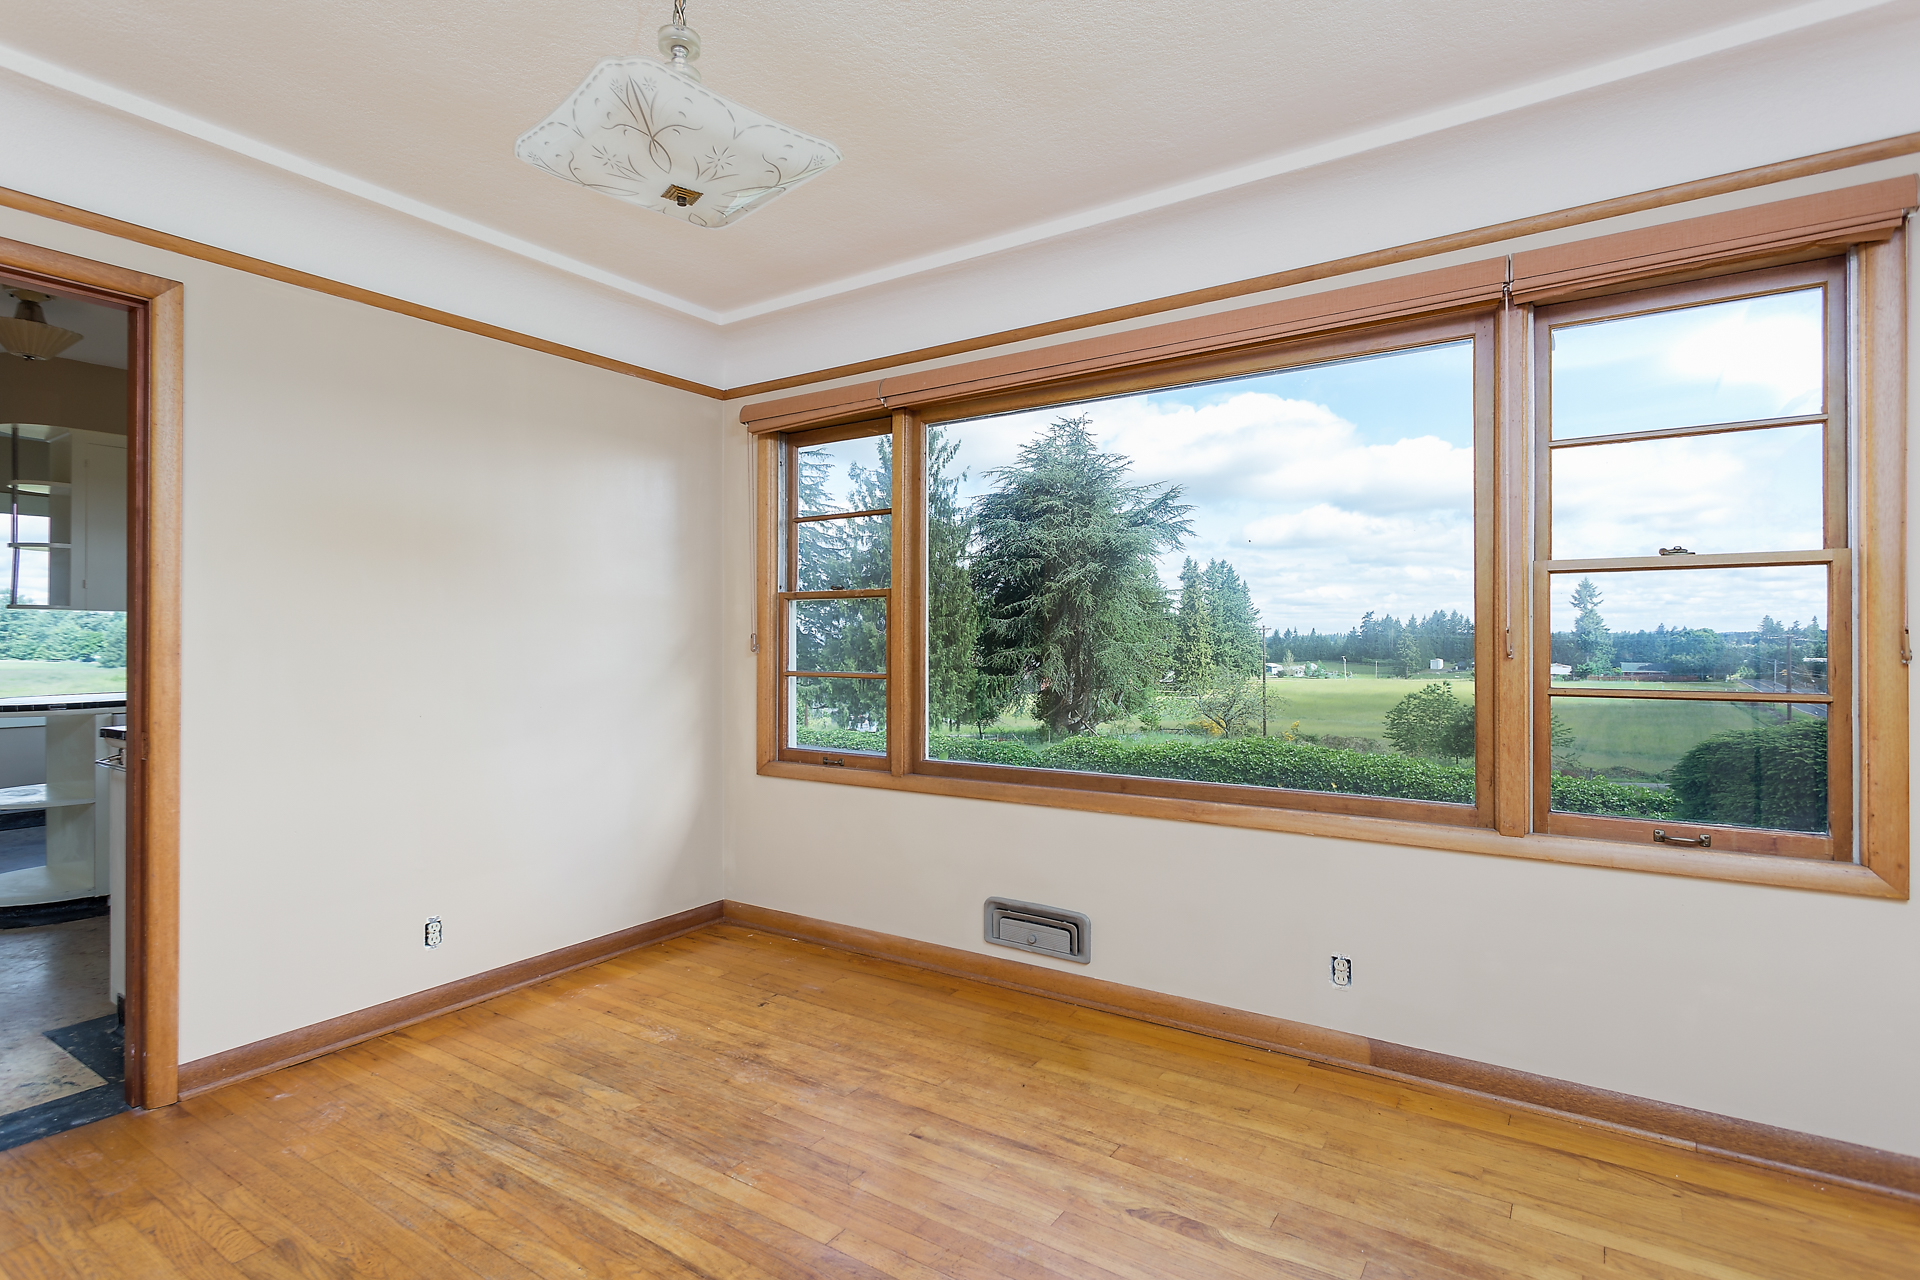 Formal dining room with beautiful view.